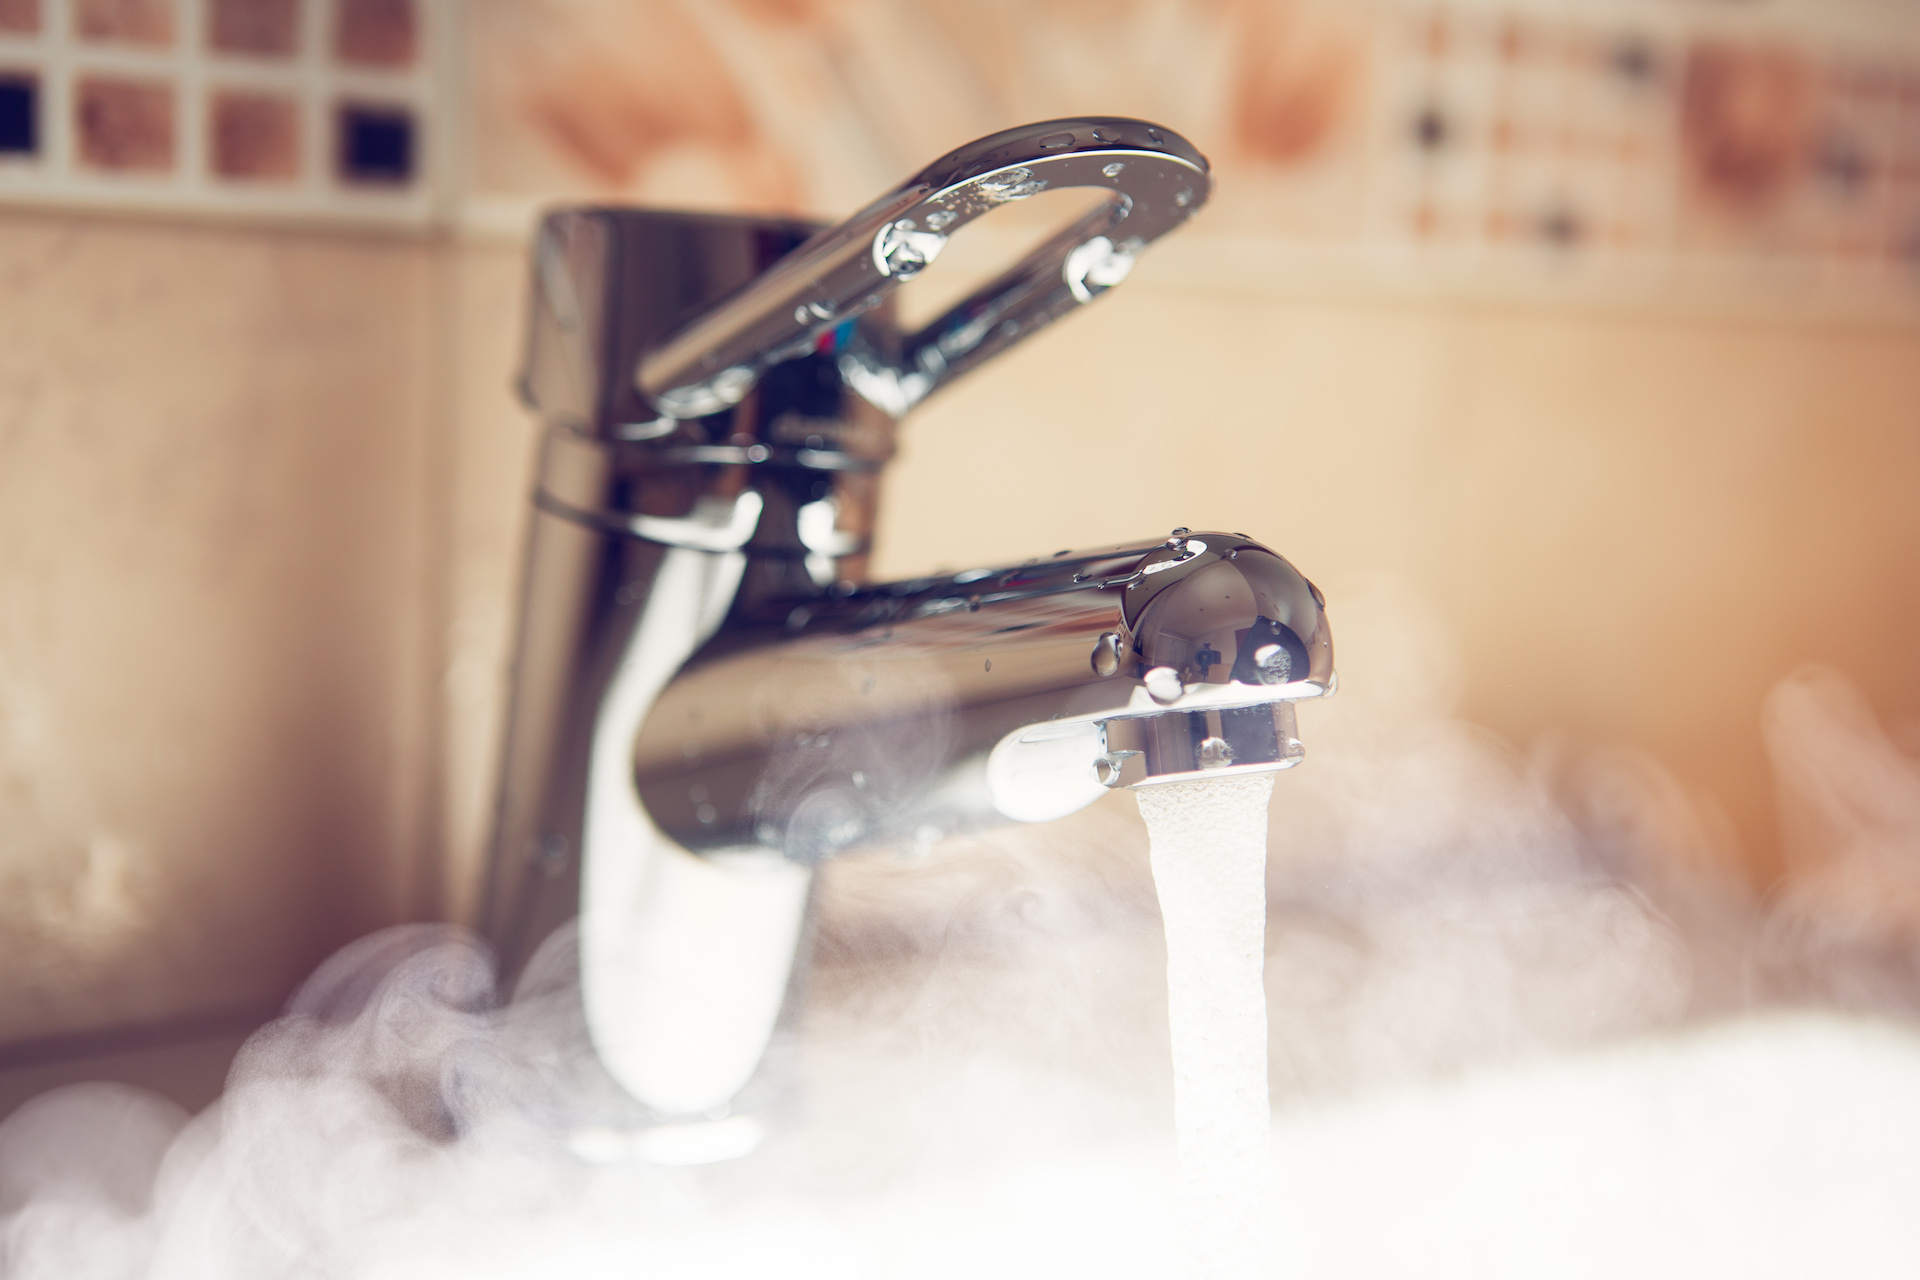 How to know if your hot water system is broken